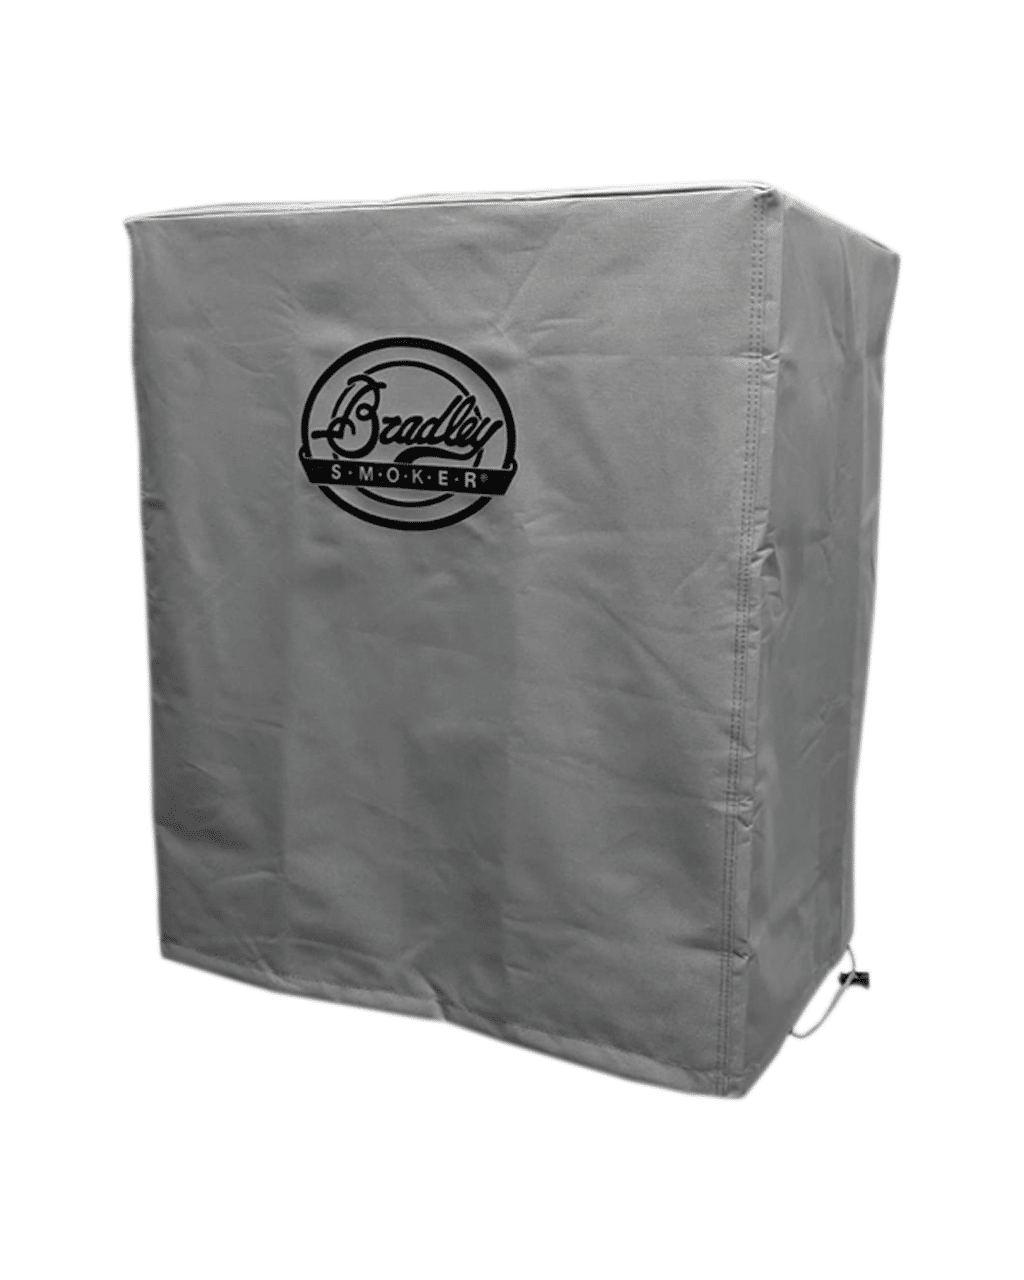 Weather Resistant Cover for Bradley P10 Professional Smoker